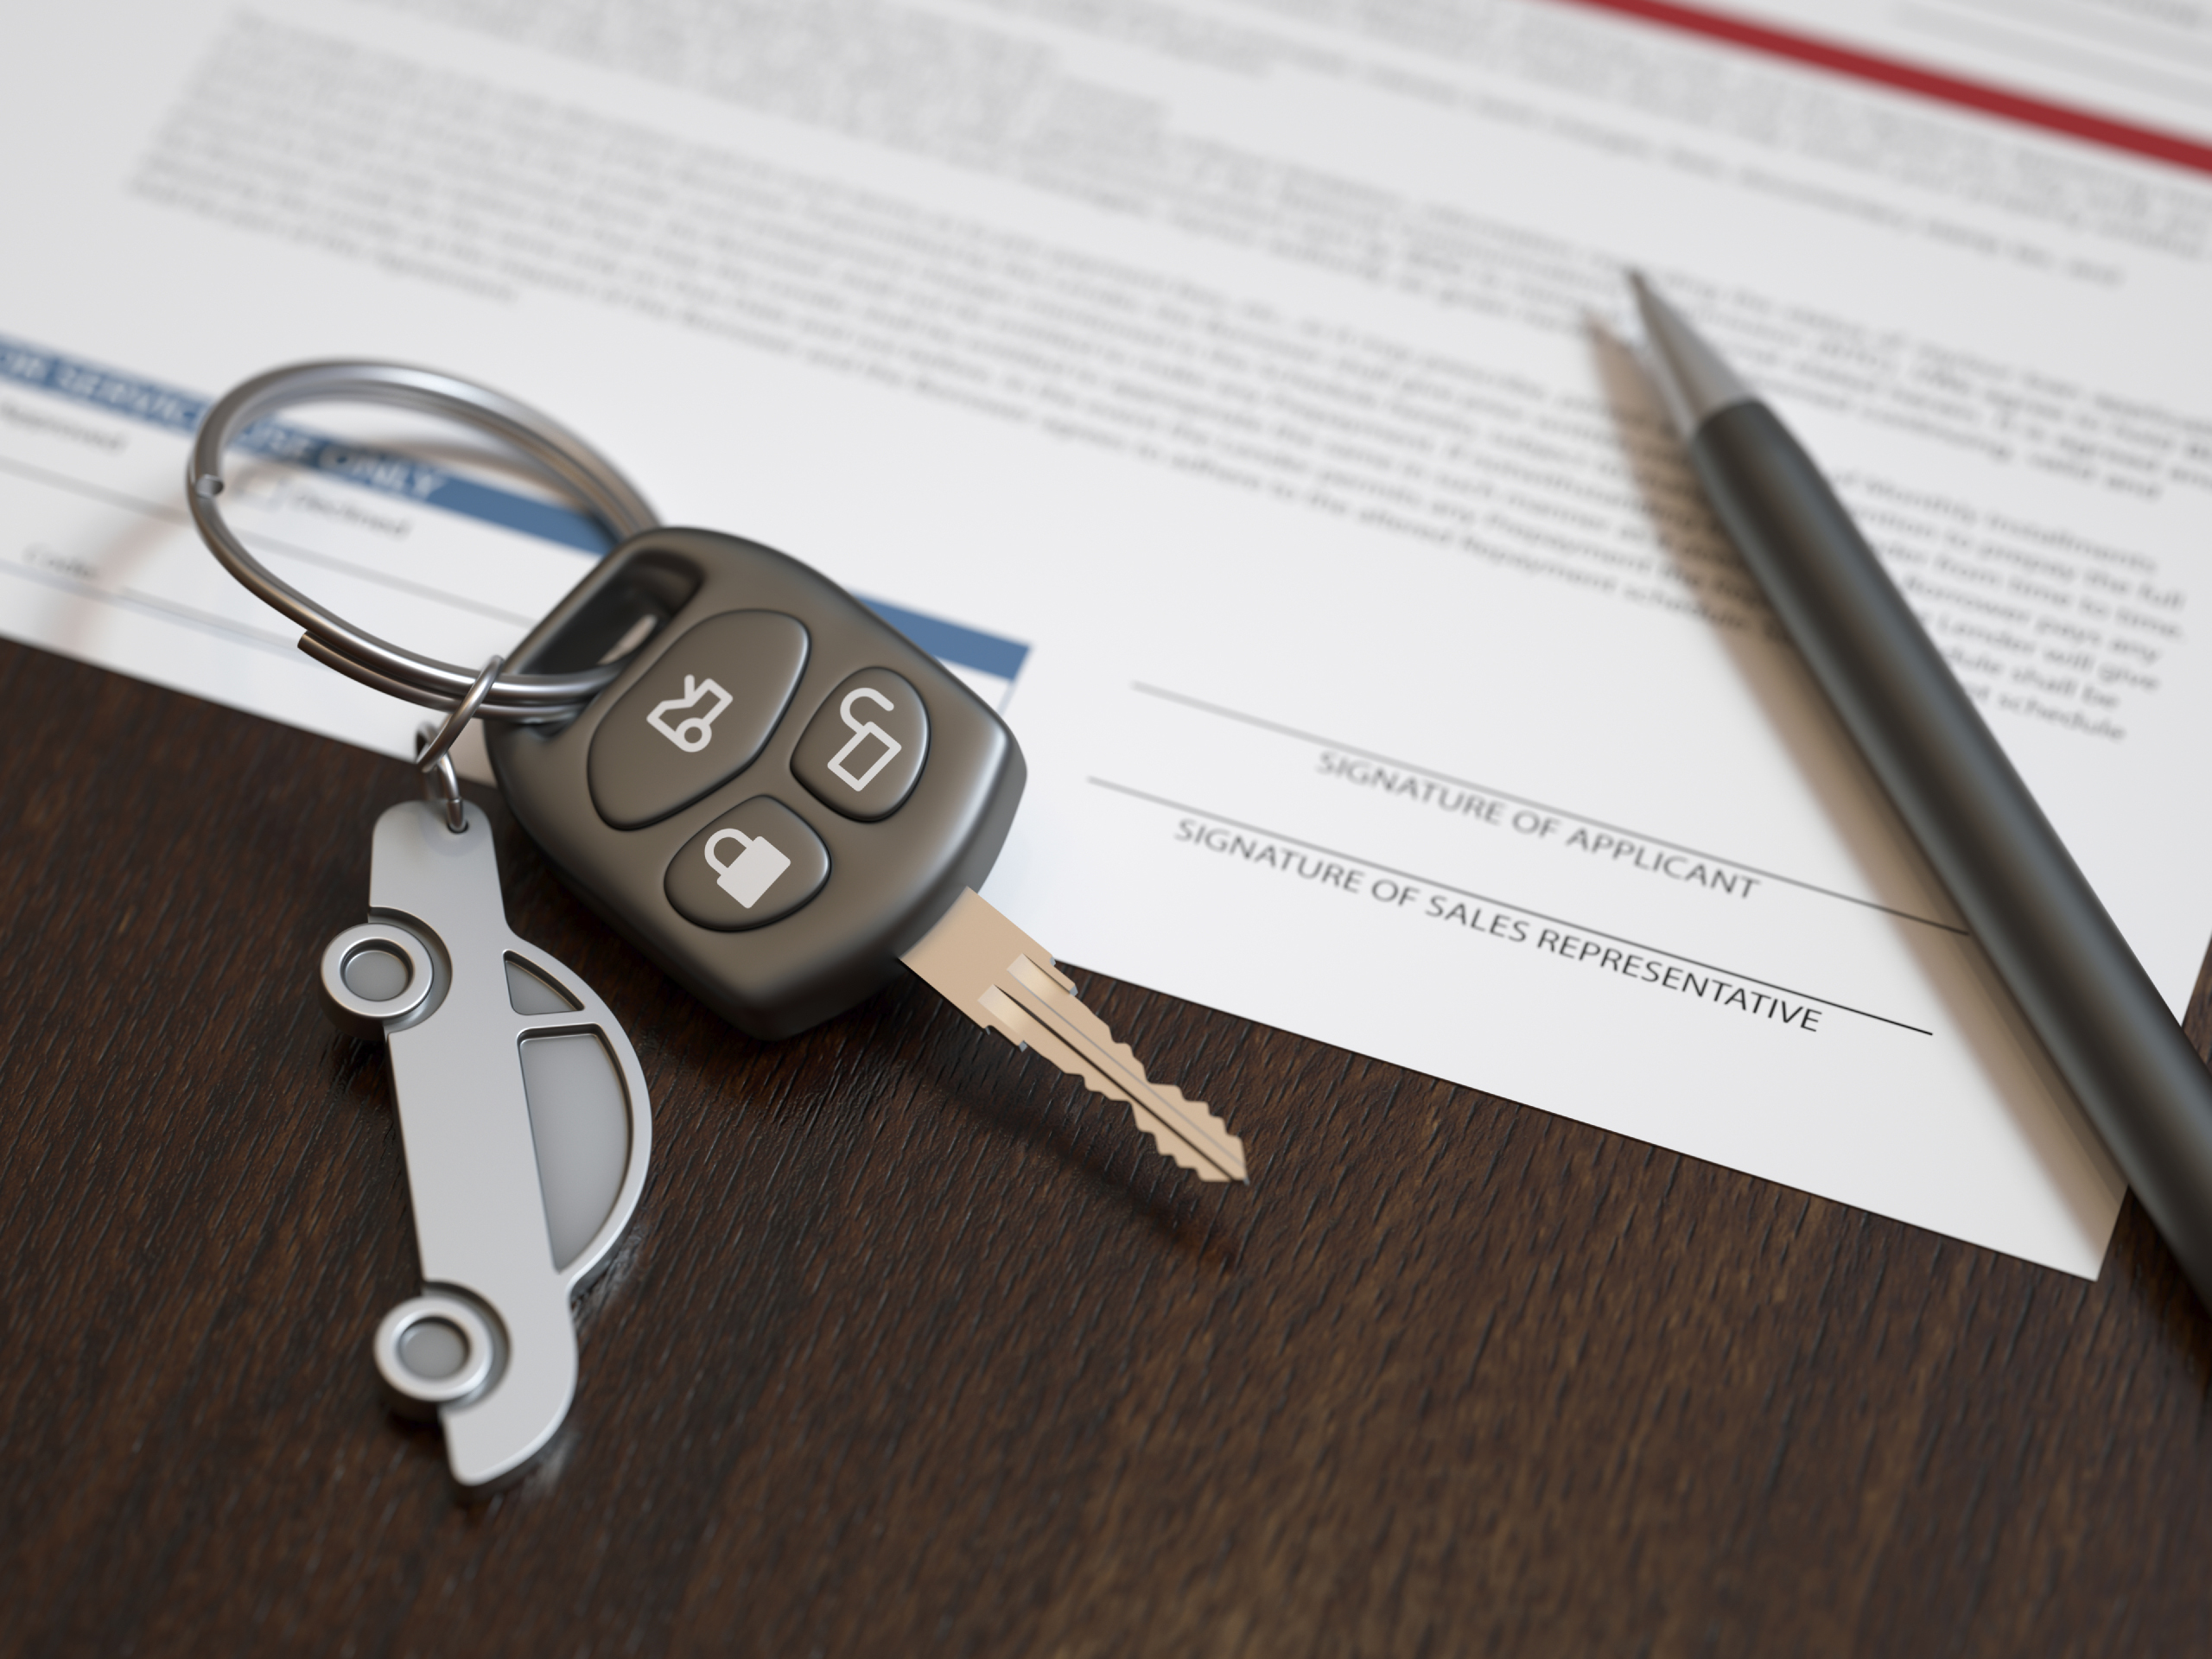 How Do I Finance a Used Vehicle?